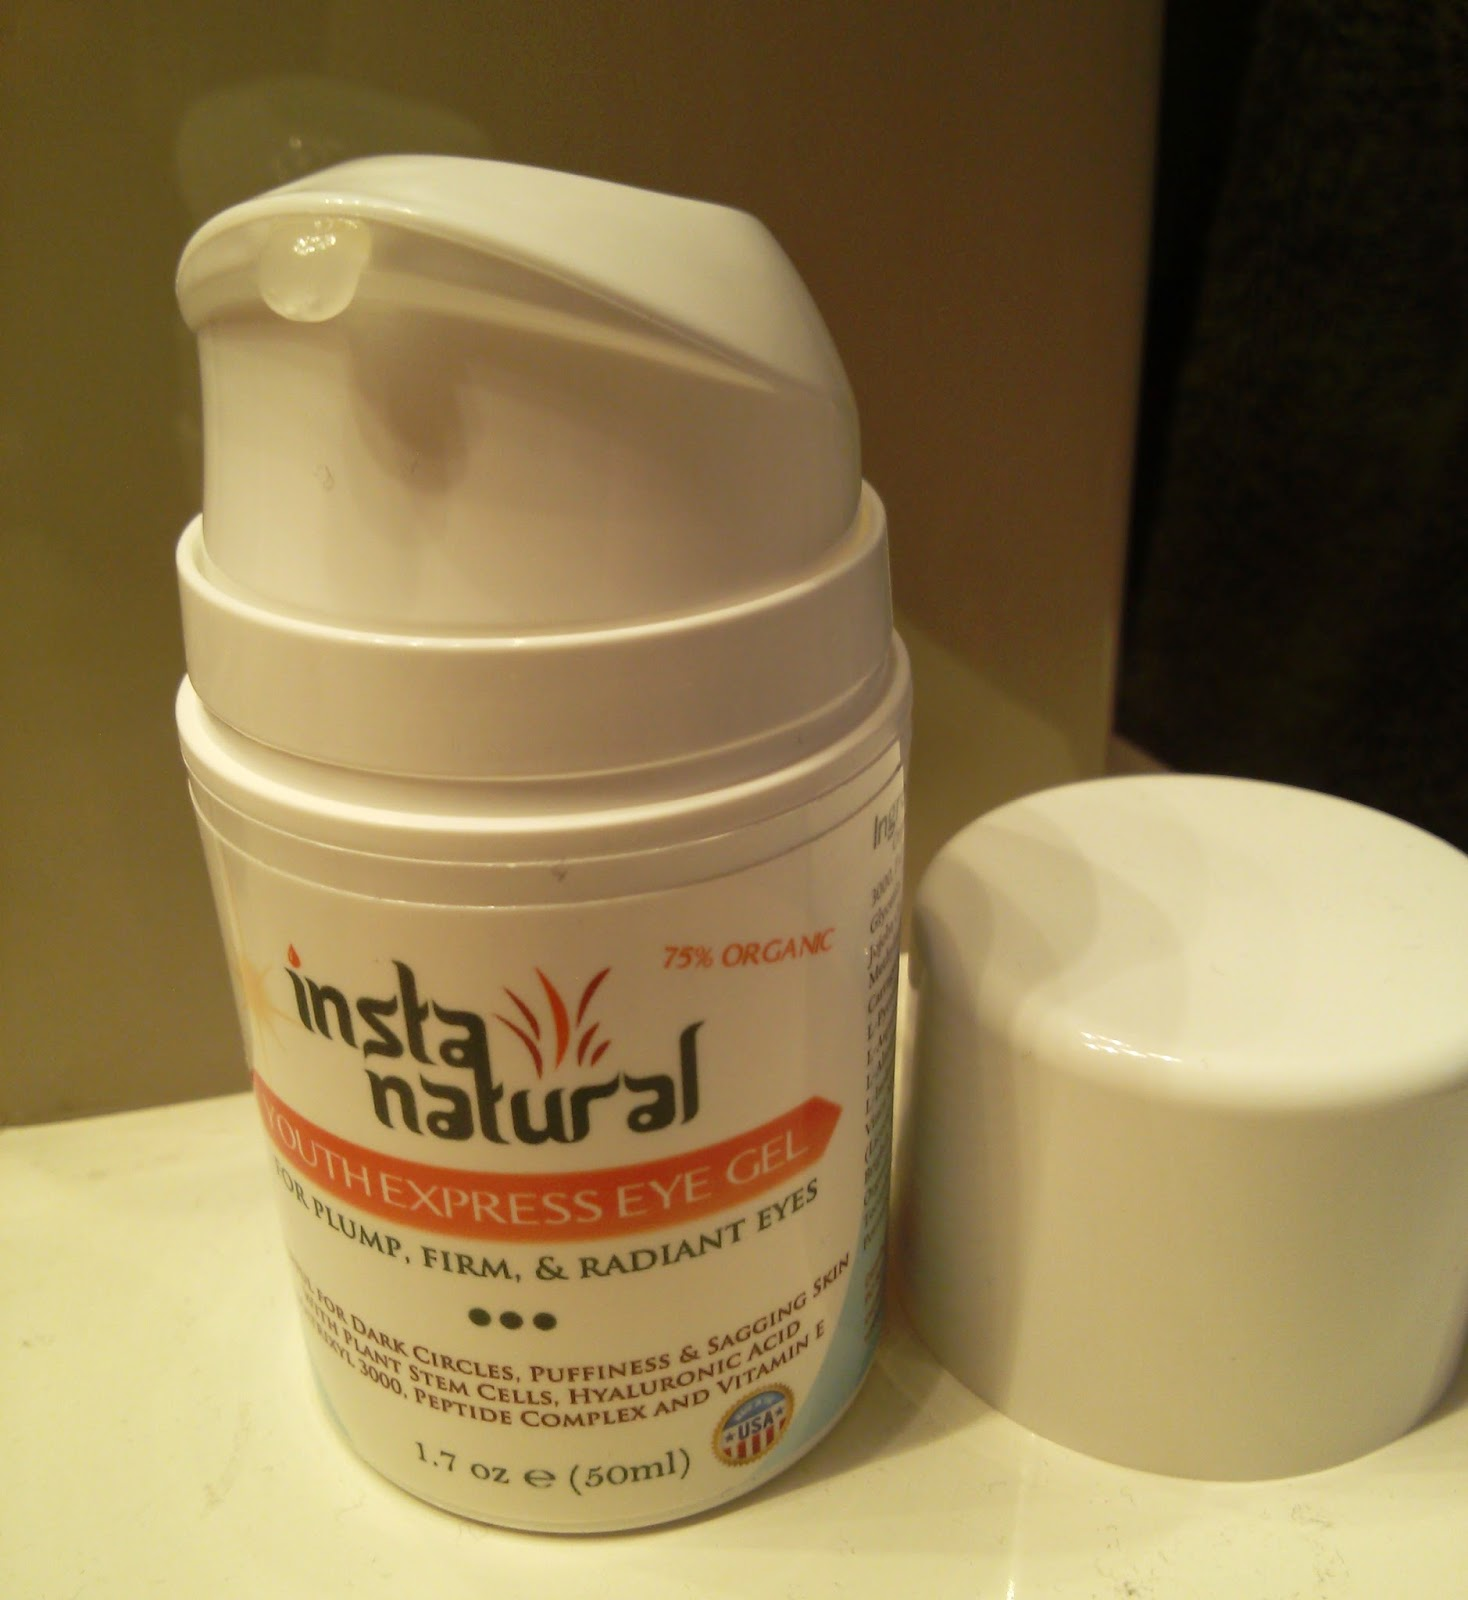 InstaNatural Youth Express Eye Gel Review